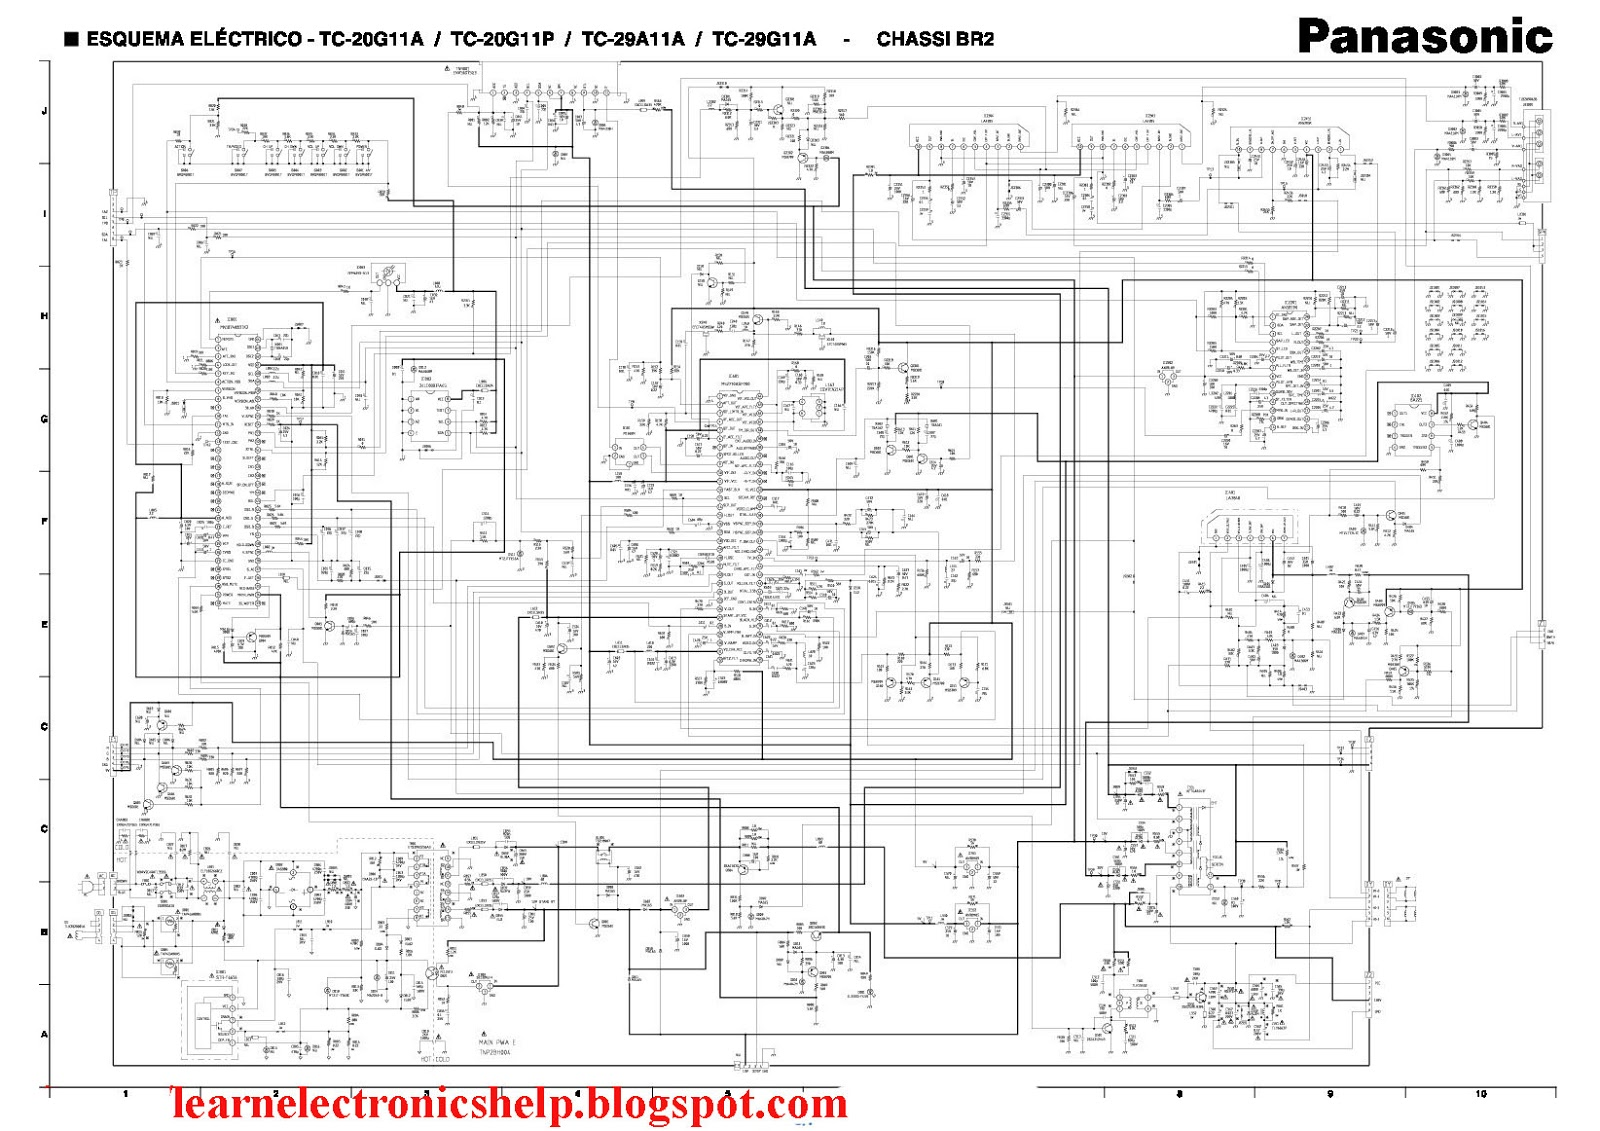 small resolution of panasonic schematic diagram circuit simple wiring diagram schema panasonic microwave oven parts list panasonic schematic diagram